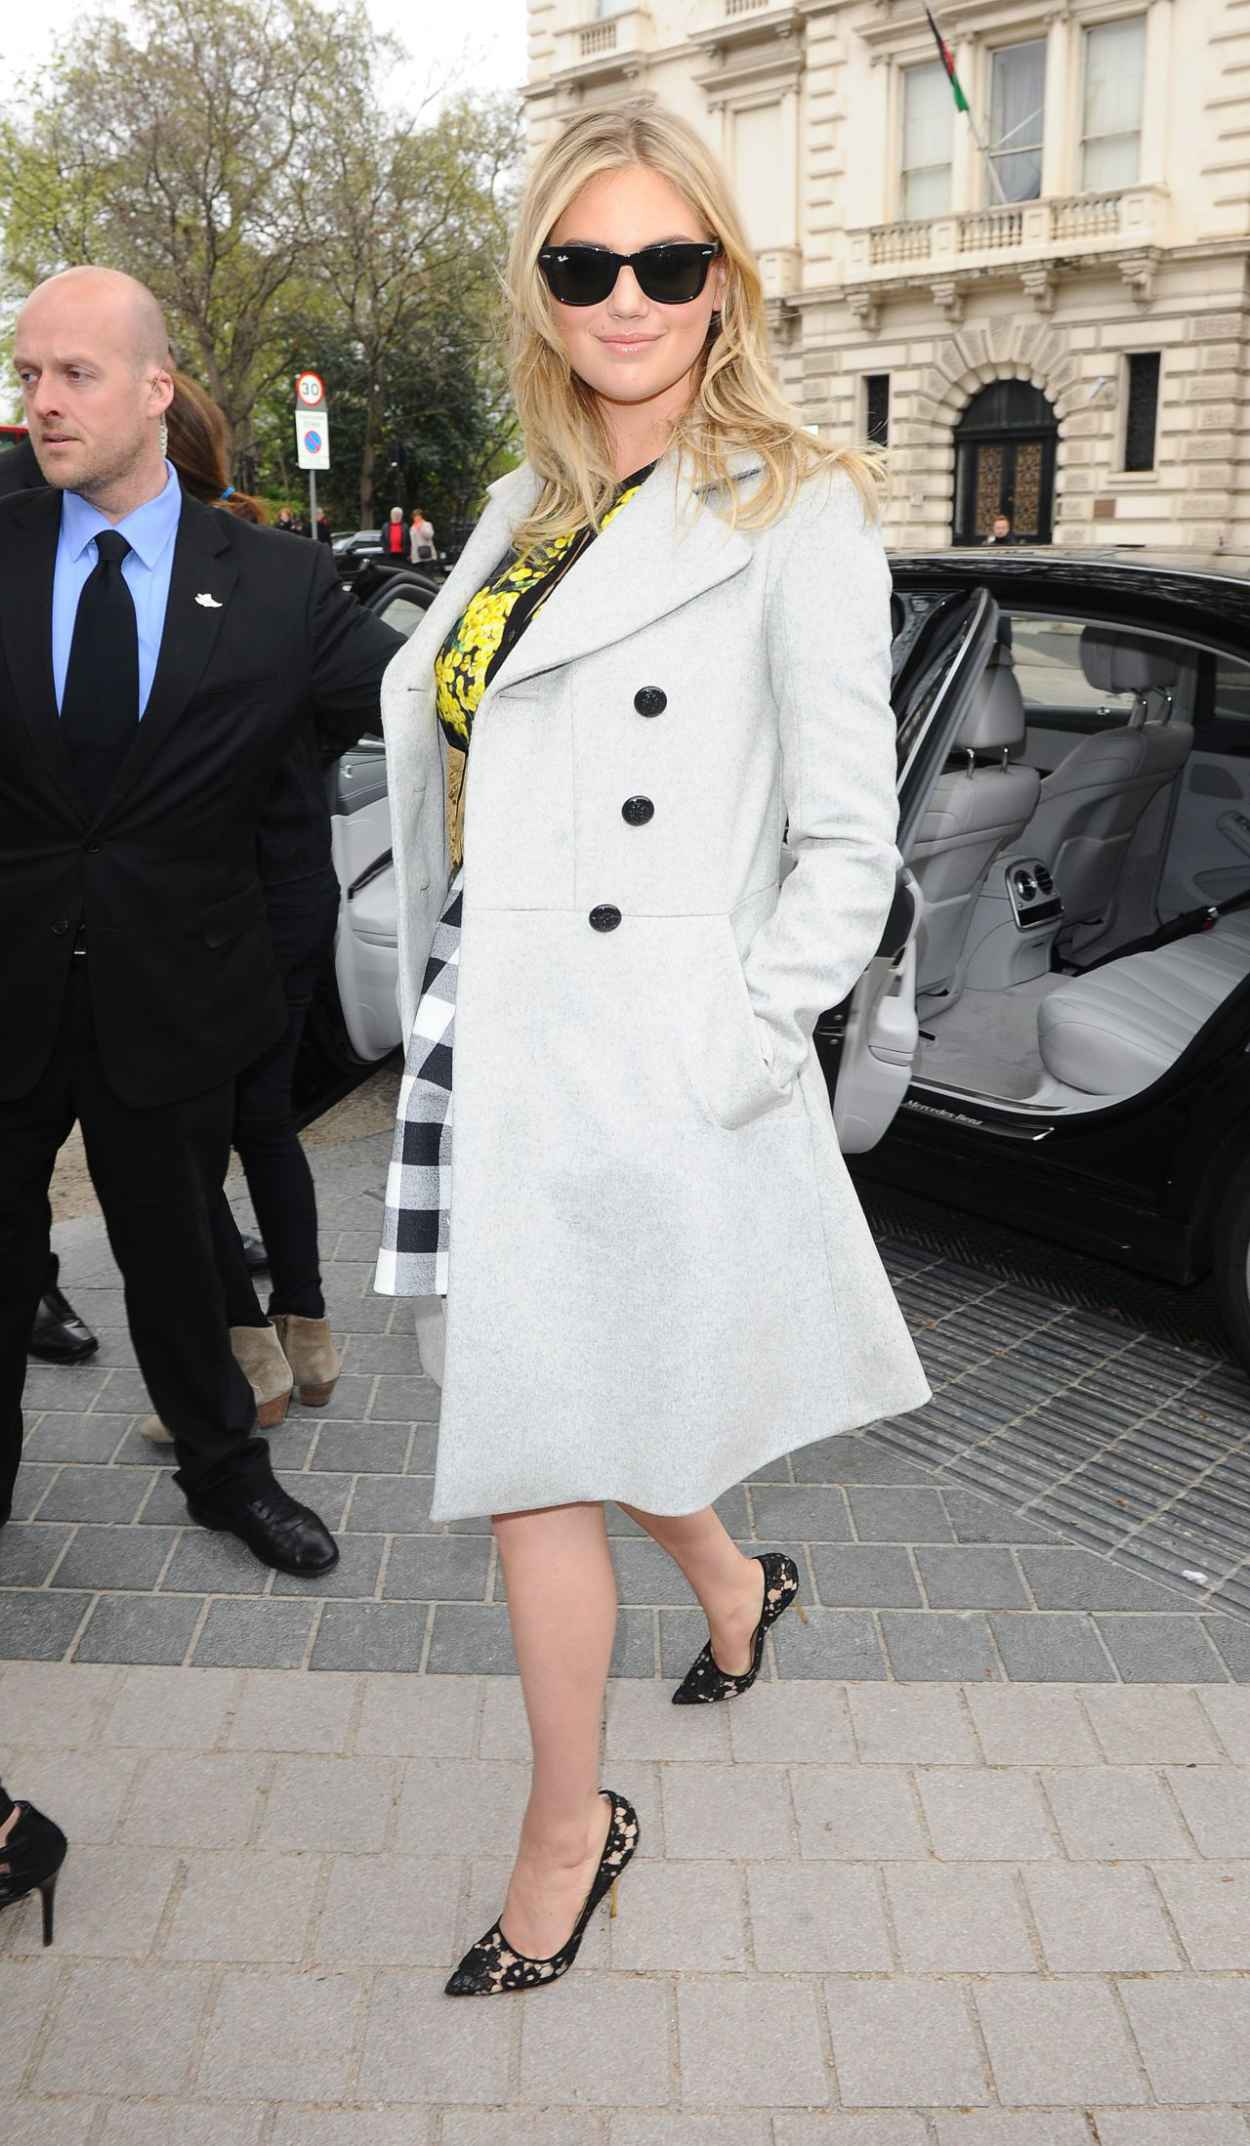 Kate Upton Style At The Vogue Festival In London April 2015